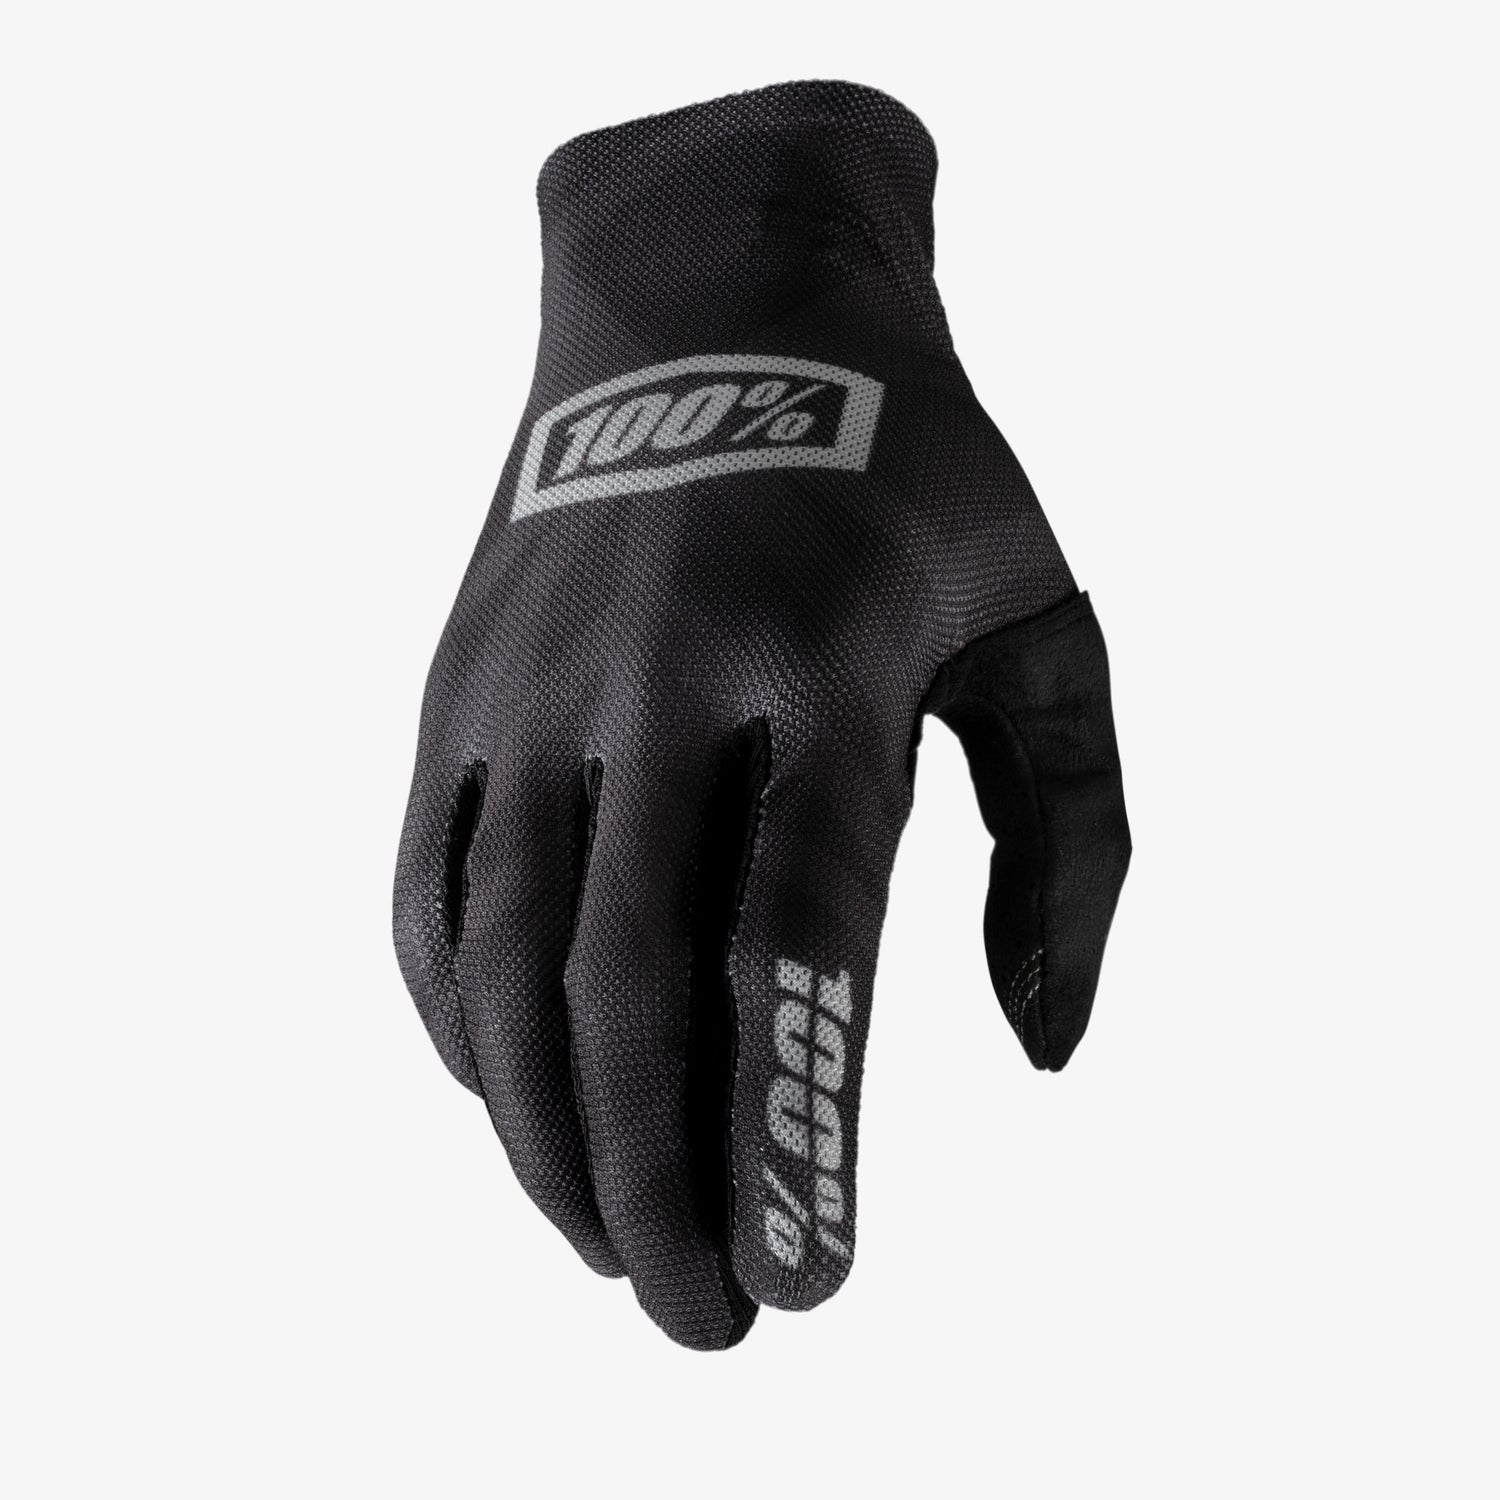 CELIUM Gloves Black and Silver